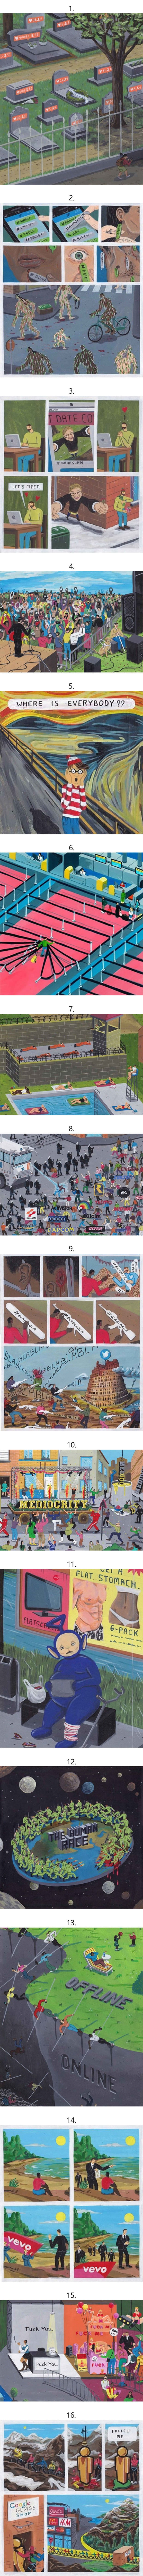 Powerful Images That Sum Up How Social Media Is Ruining Our - 16 powerful images that sum up how social media is ruining our lives